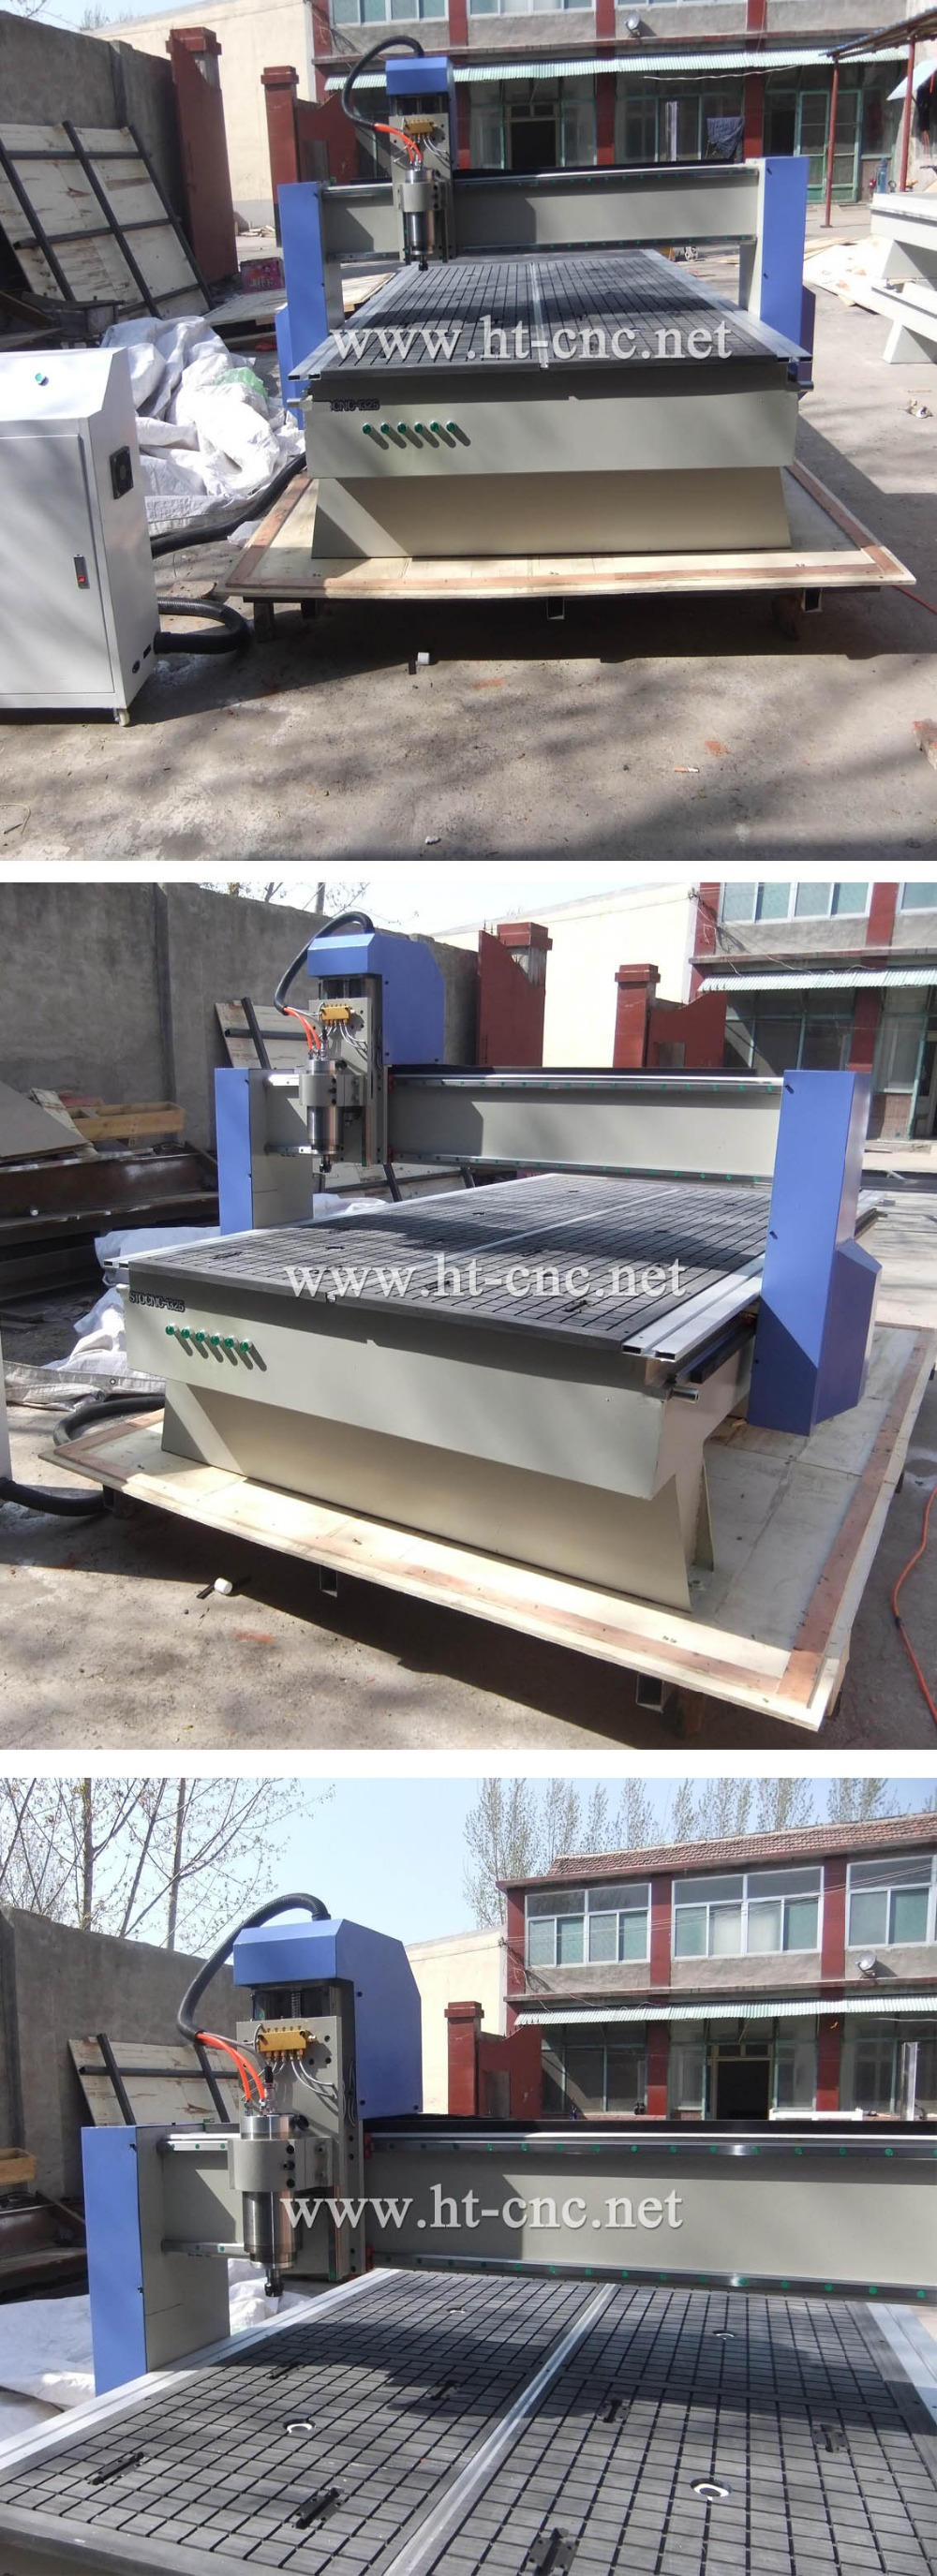 Cnc Router Table For Aluminum Table Top Aluminum Milling